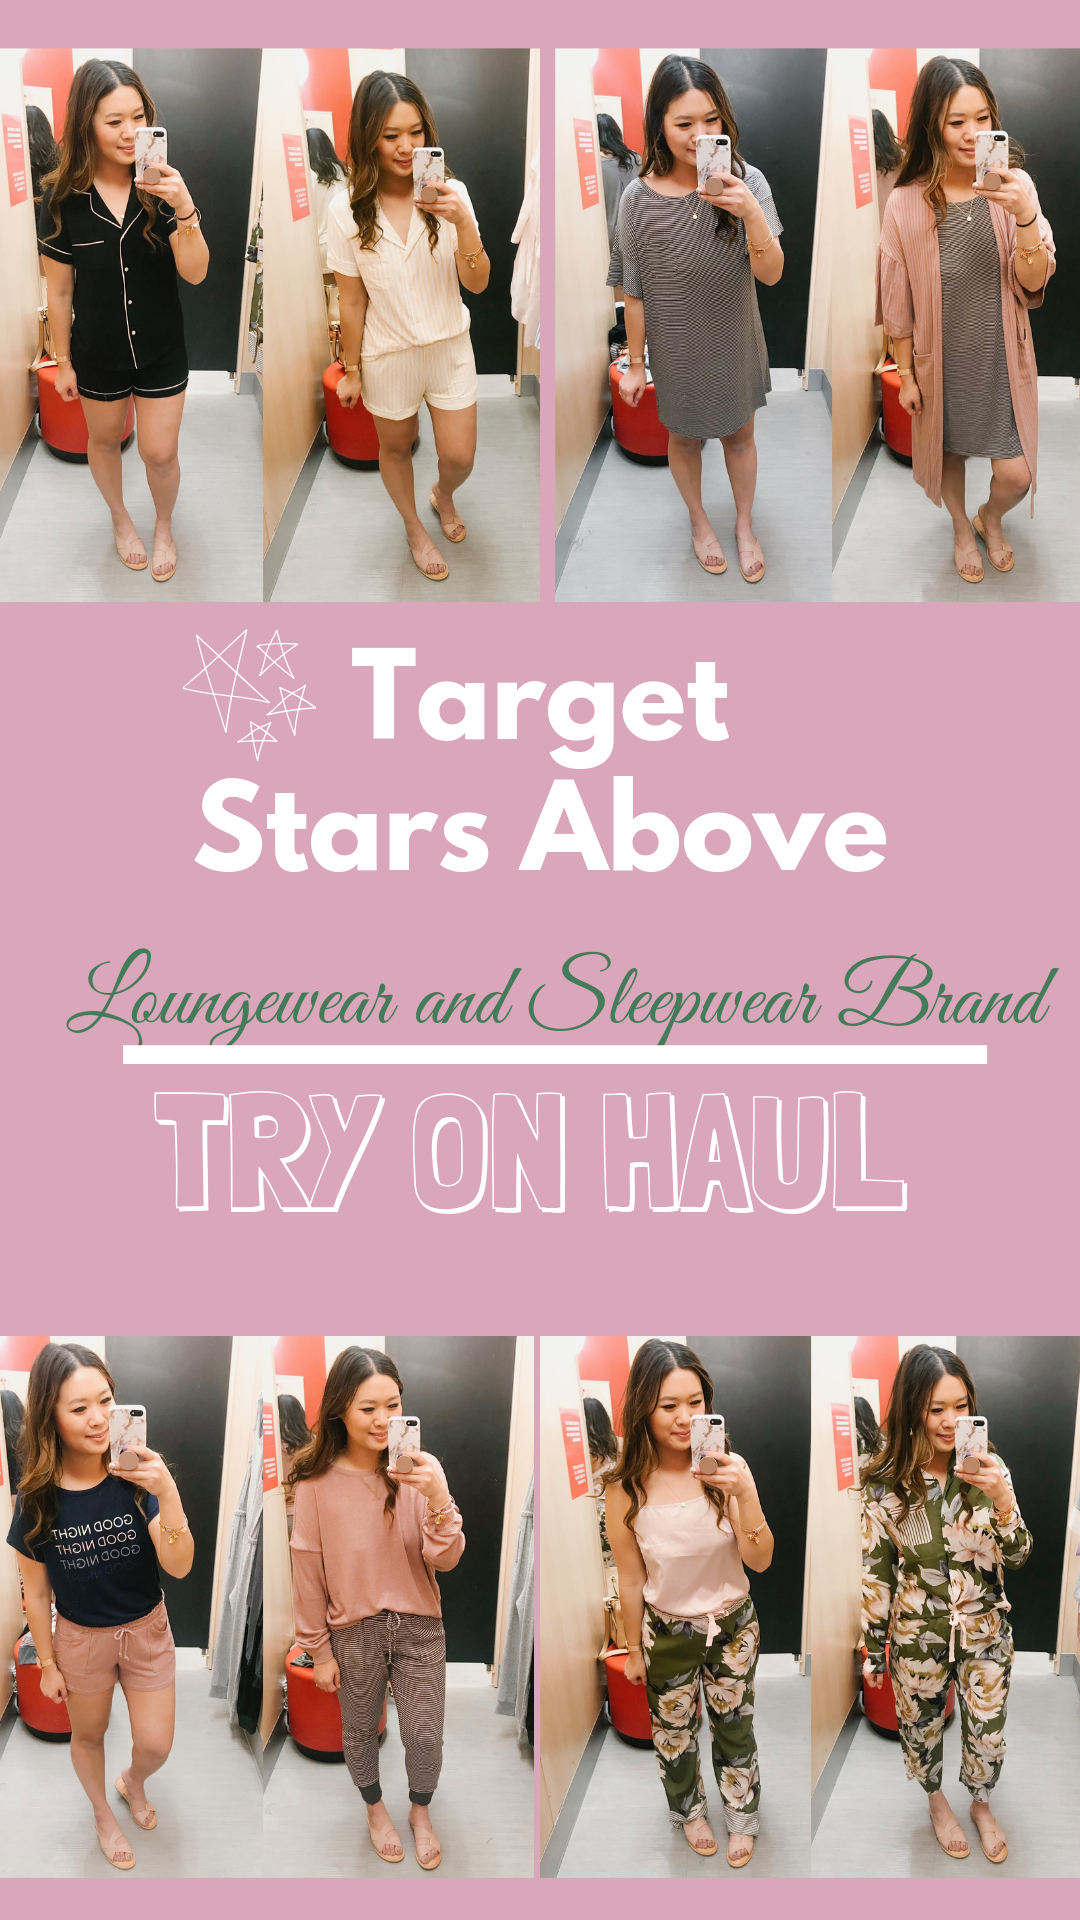 d5ce9d90115 Review Of Target s New Loungewear and Sleepwear Brand - Stars Above